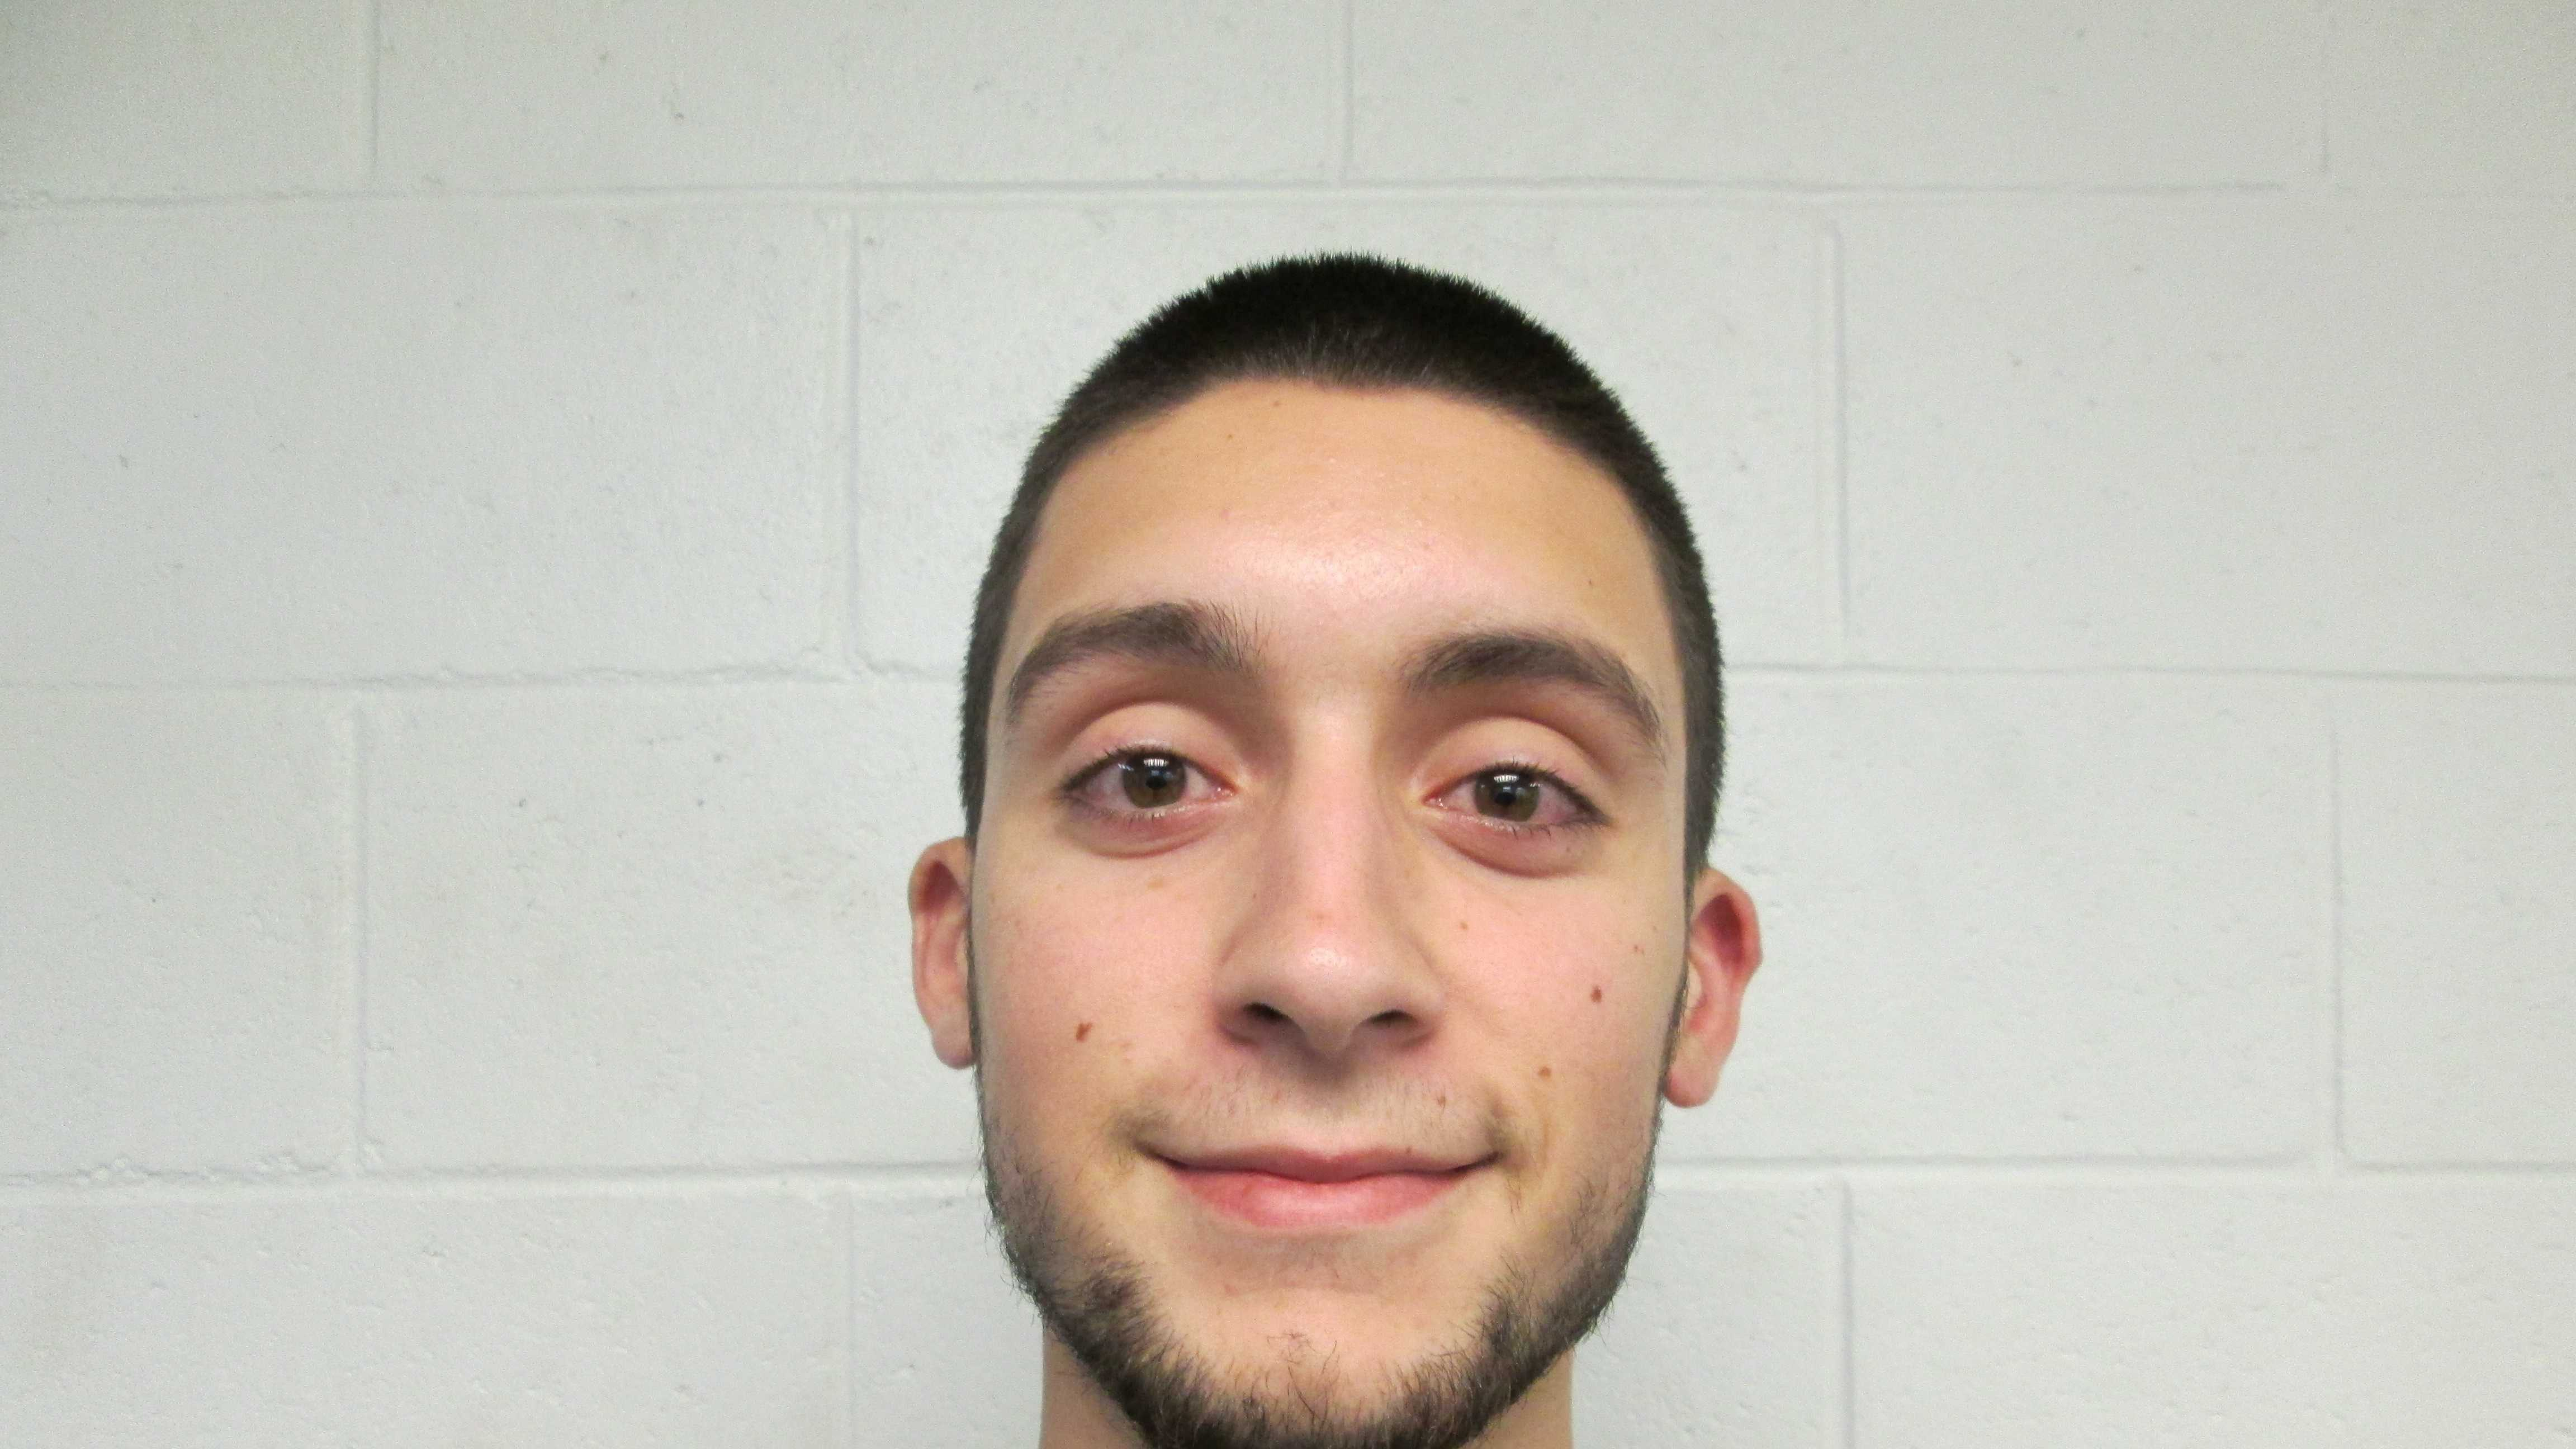 Hooksett police arrested 21-year-old Exander Casanova on Thursday after he allegedly pushed a female to the ground and broke her cell phone.